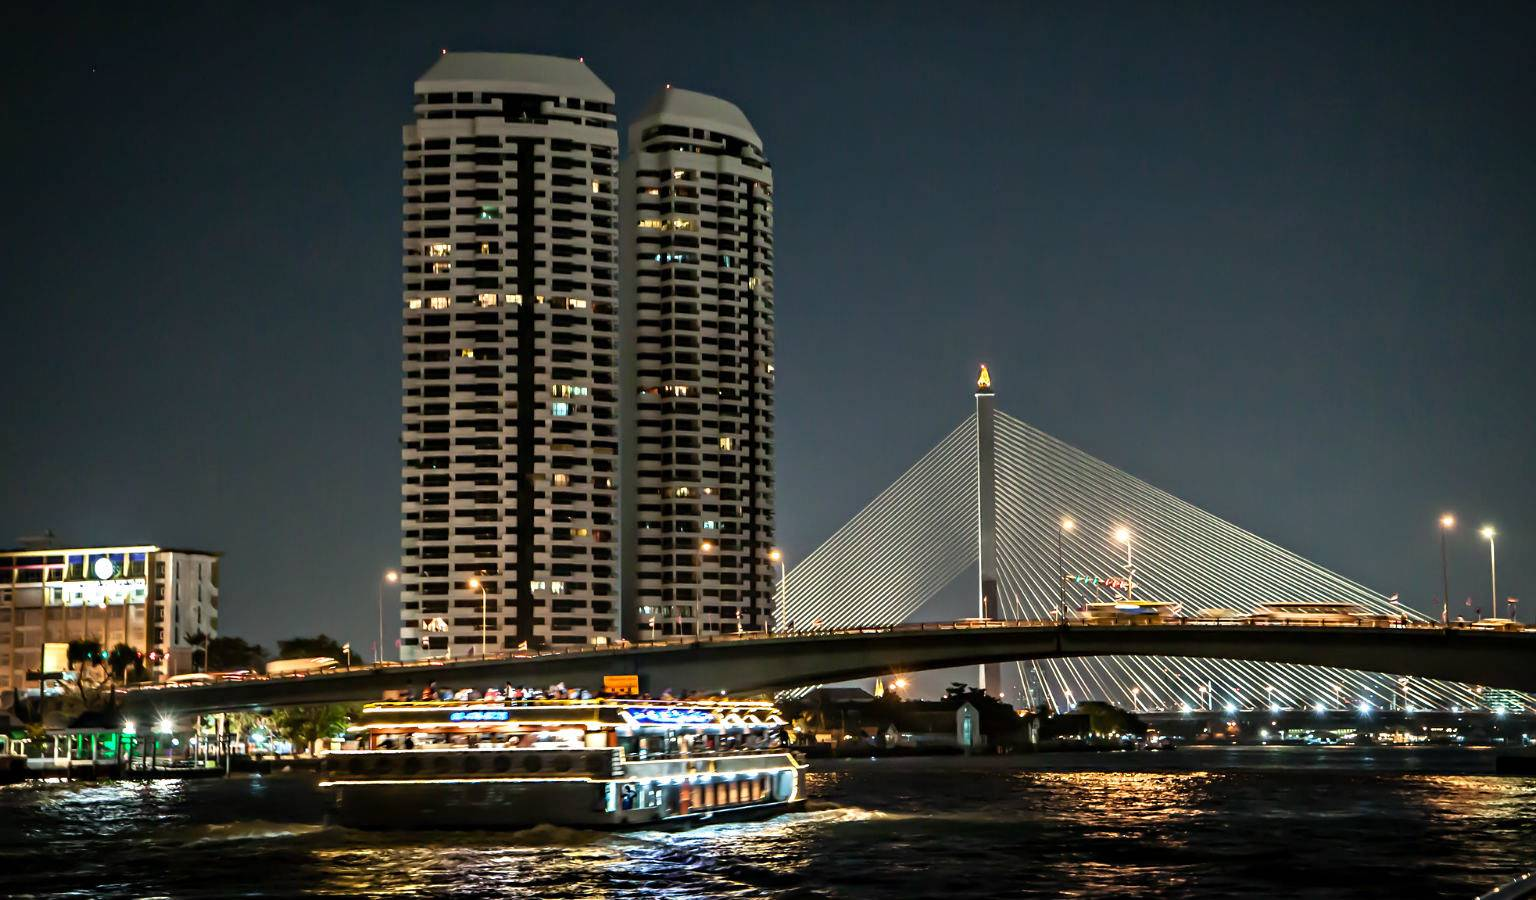 Dinner Cruise boot op de Rivier van Bangkok